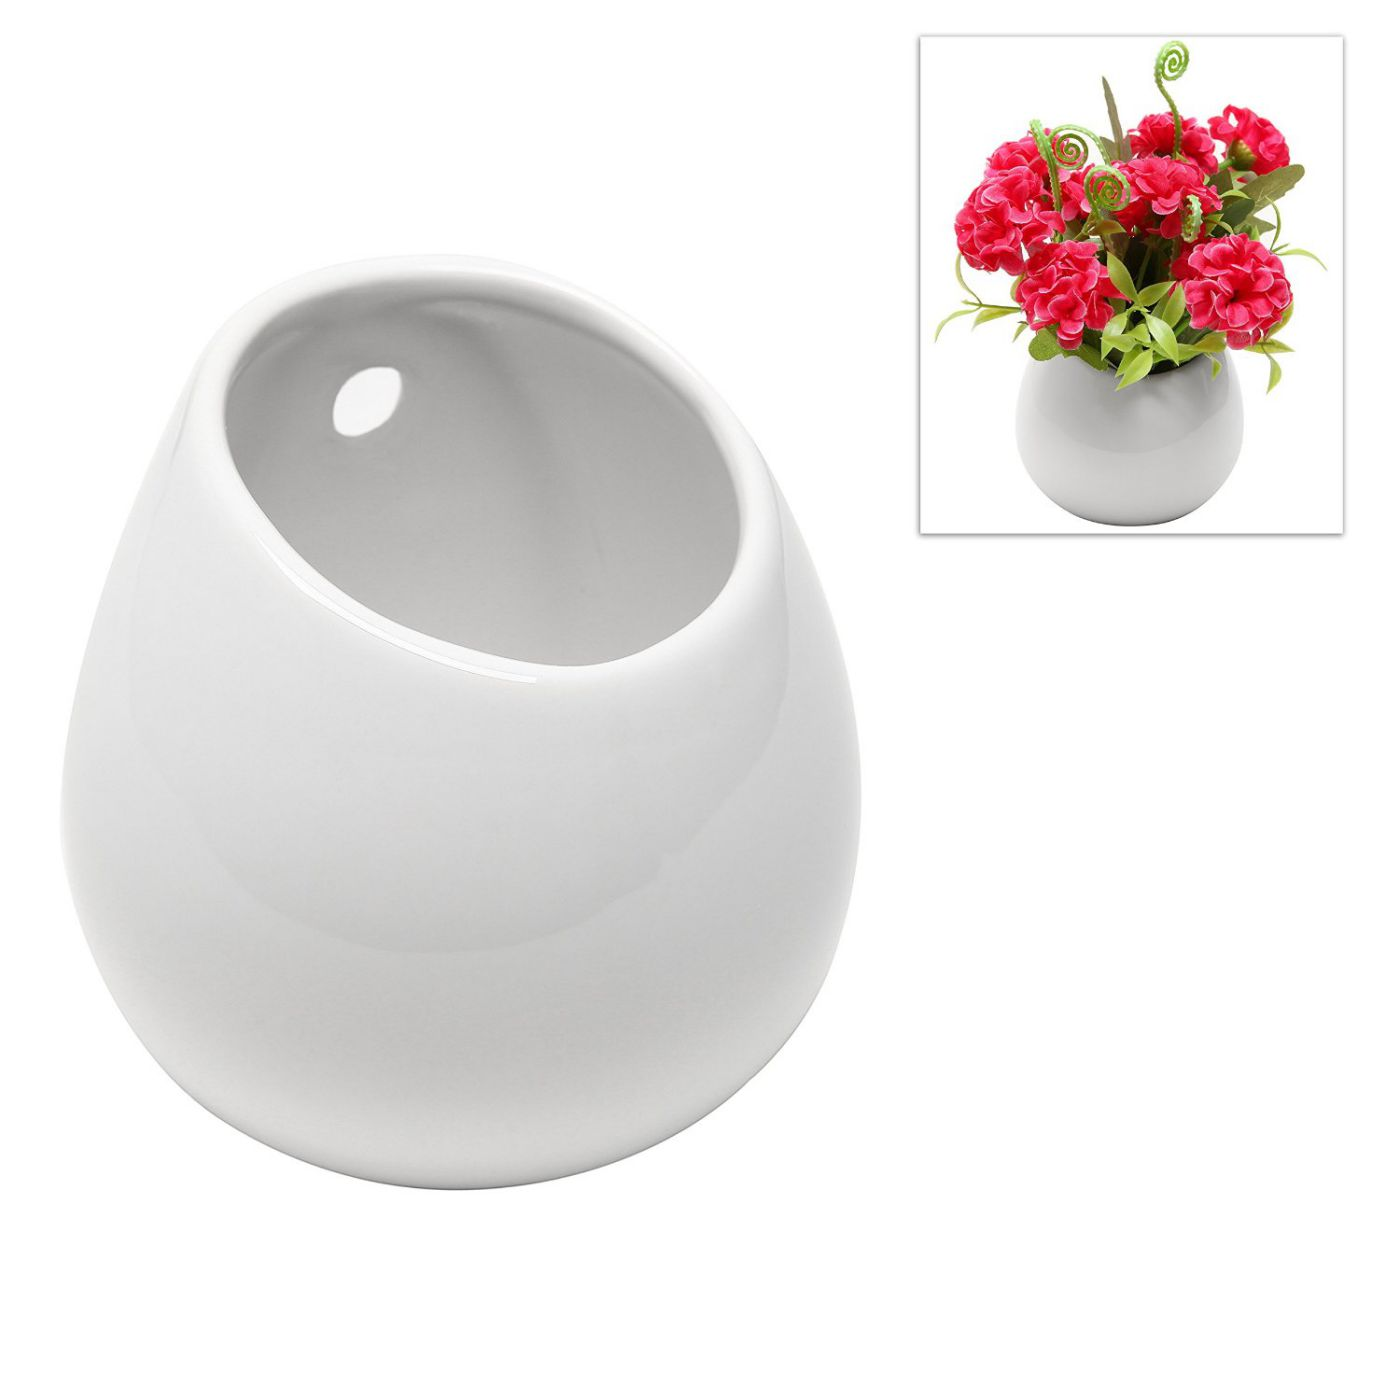 White Ceramic Vase As Neutral Furniture Decor On The Line